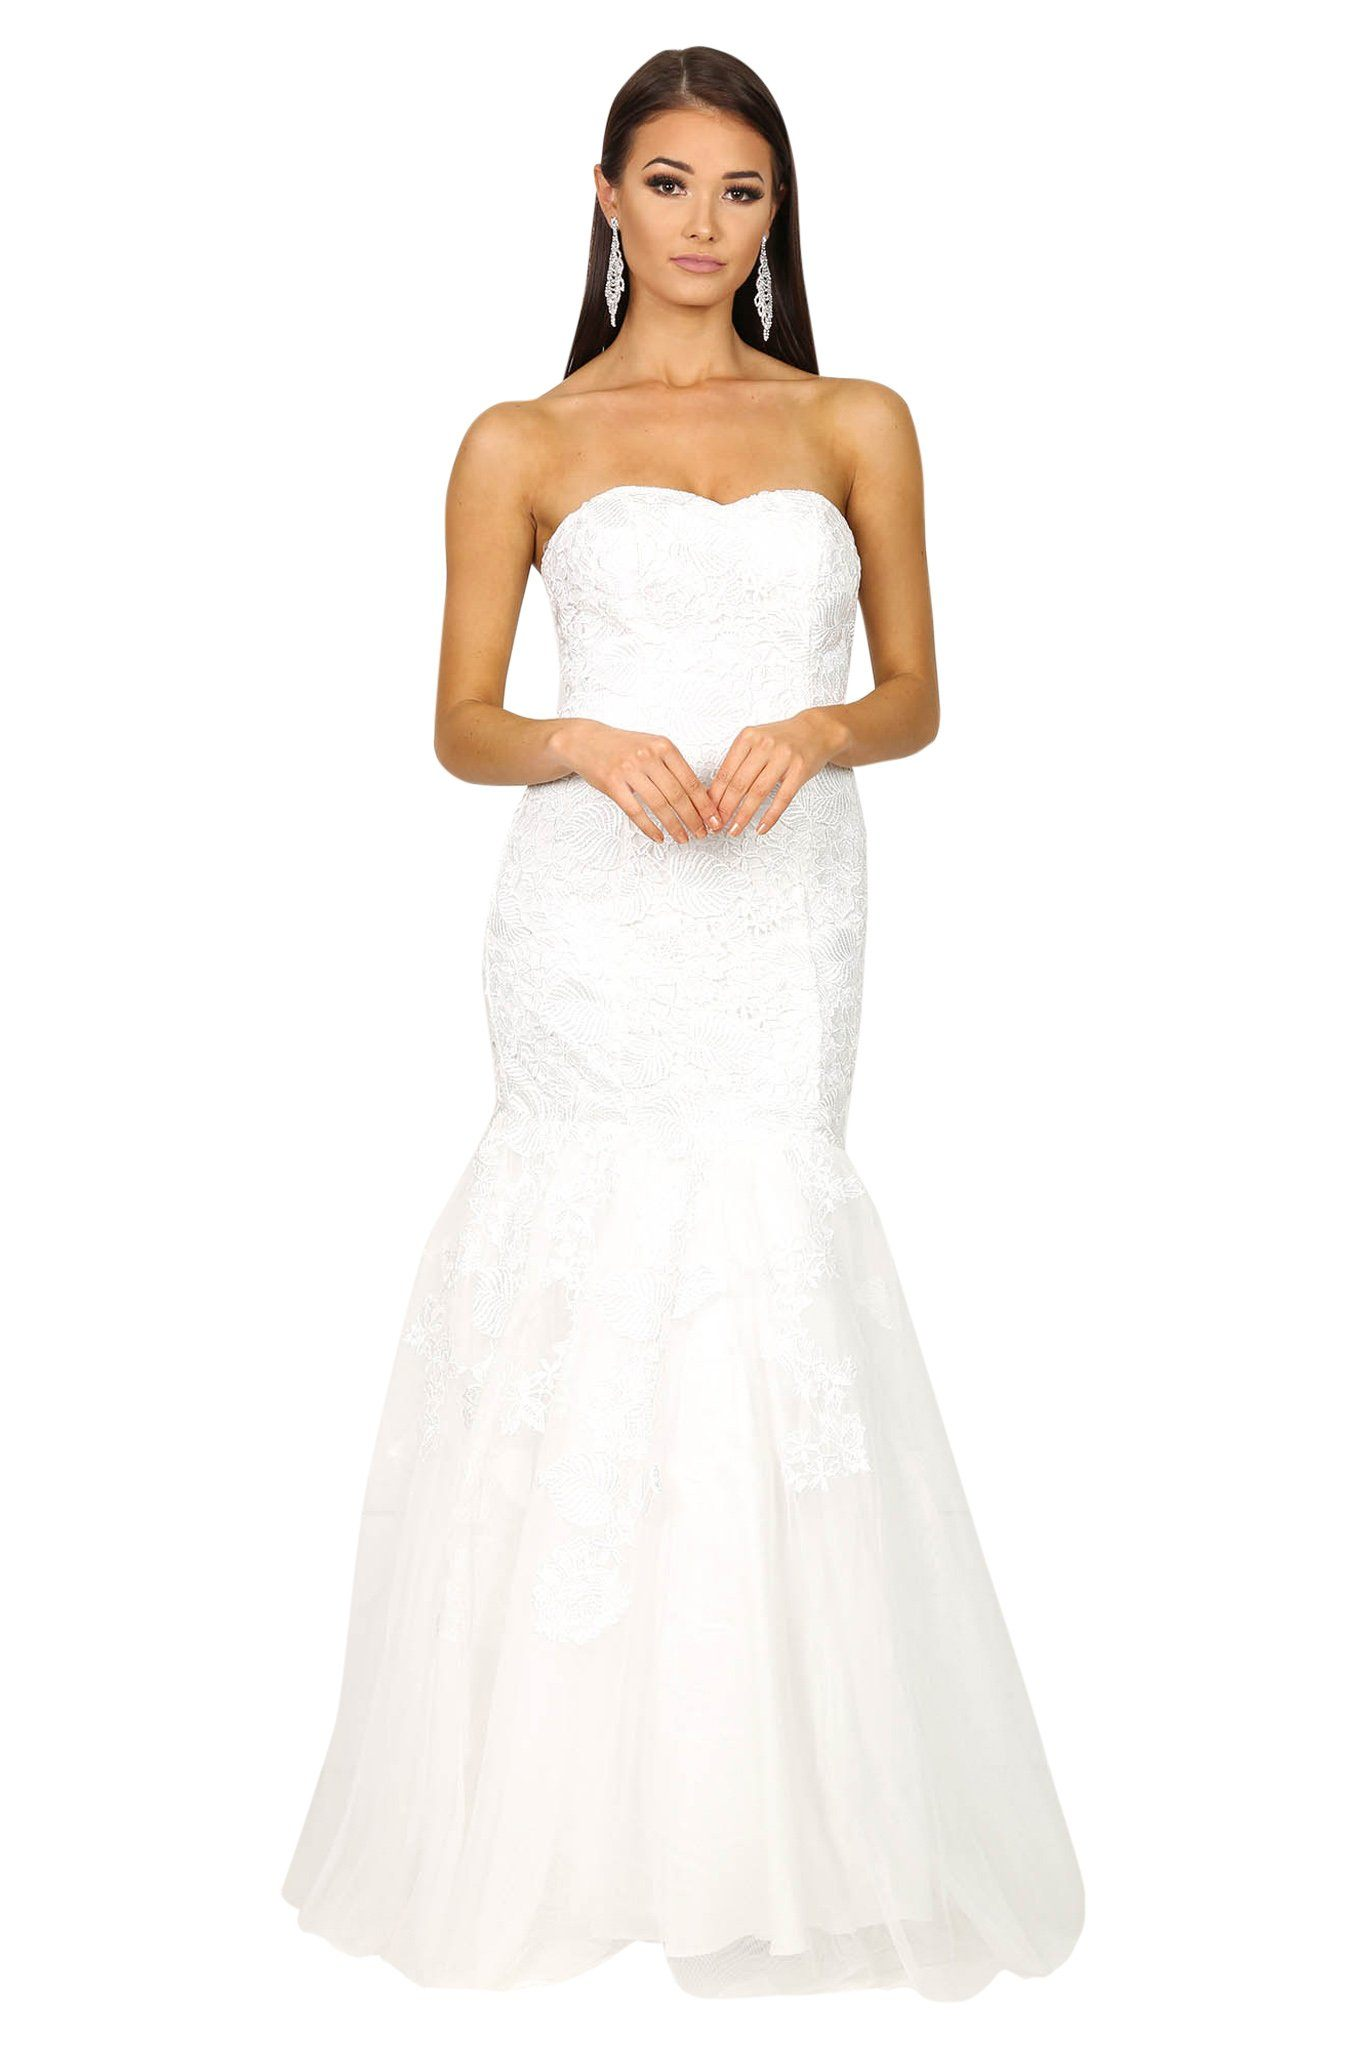 White sleeveless wedding dress features fit/flare silhouette, sweetheart neckline and ruffled mermaid skirt